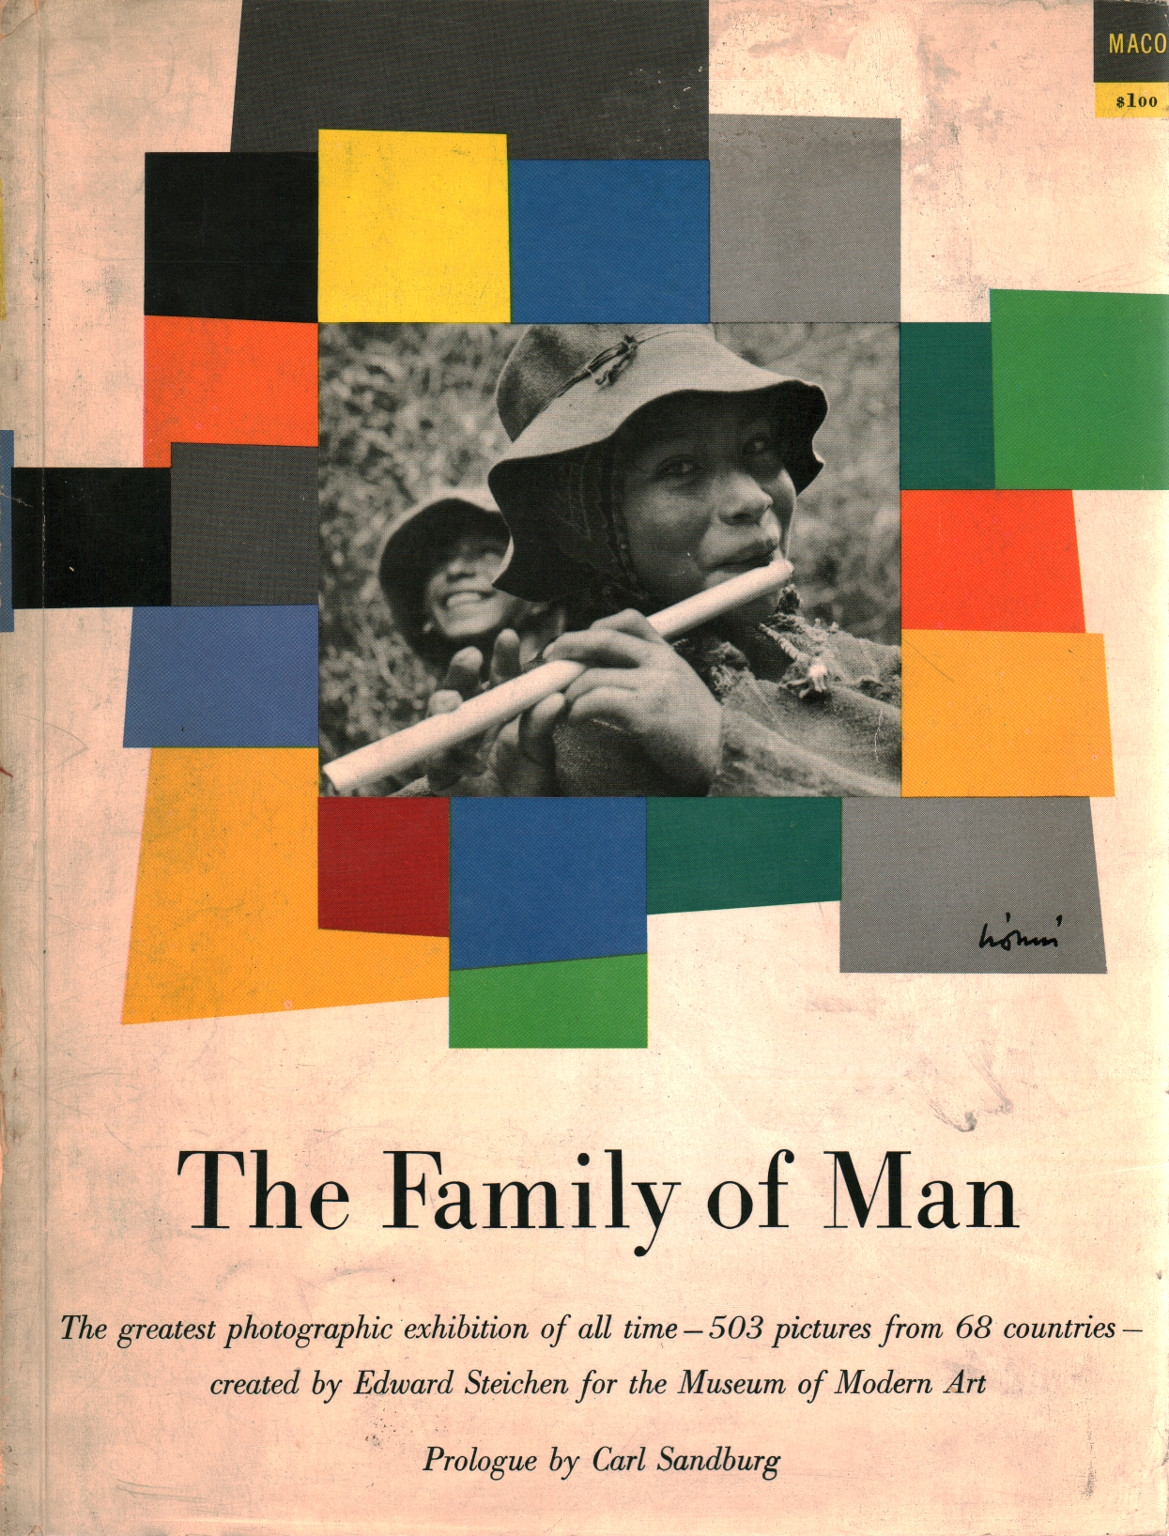 The Family of Man, s.a.